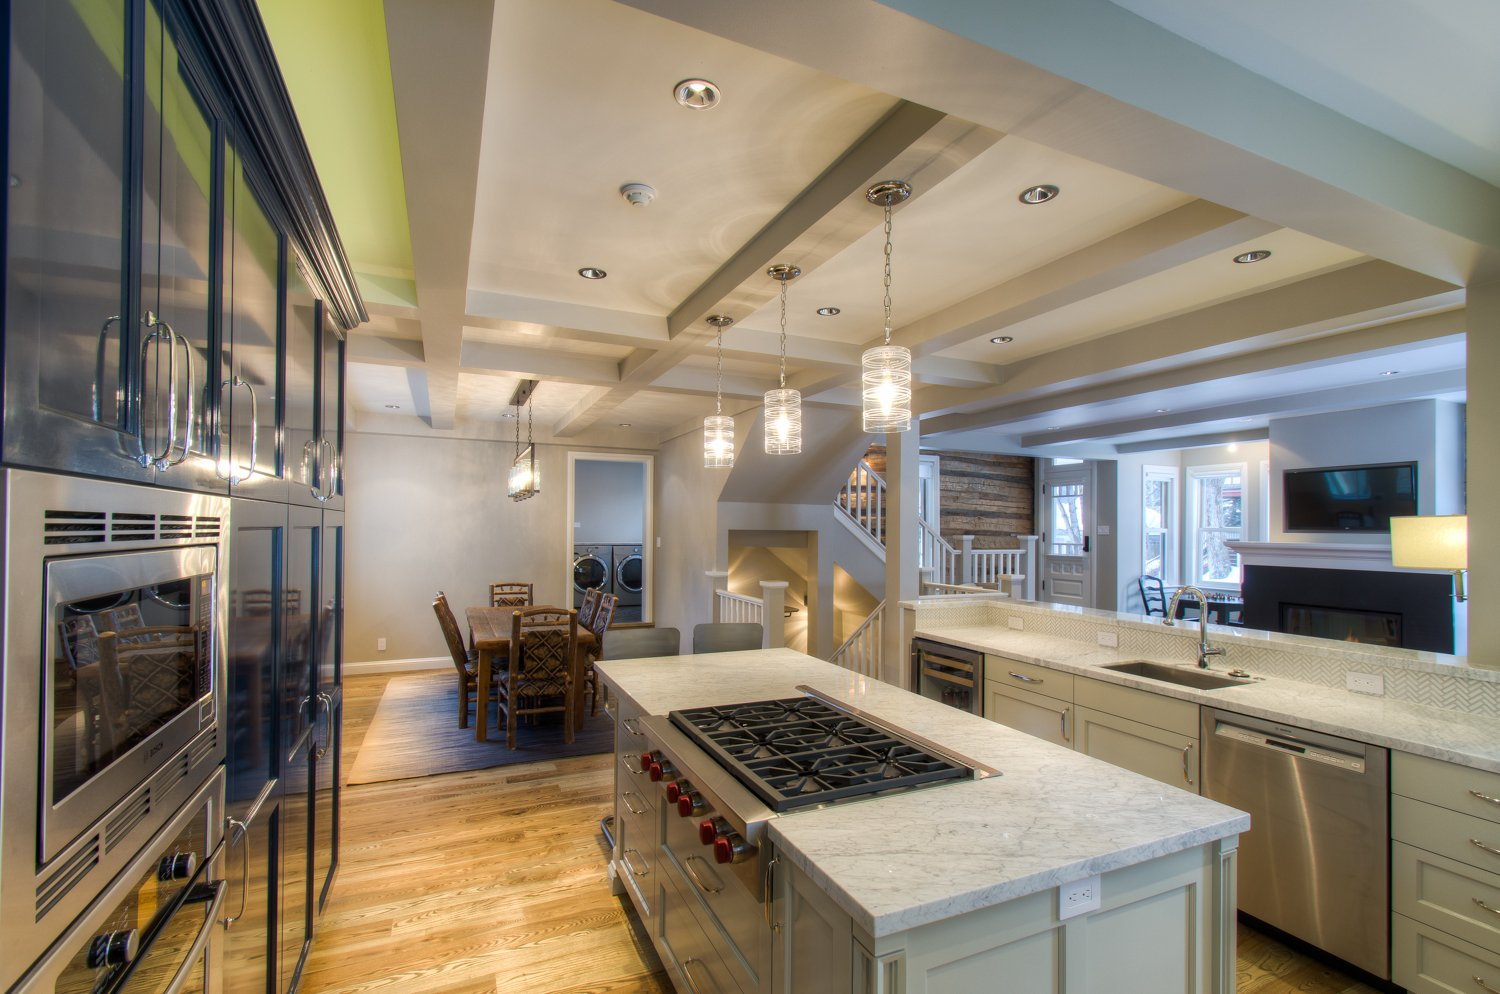 Fully Equipped Kitchen with Island and Plenty of Space for Cooking and Prep